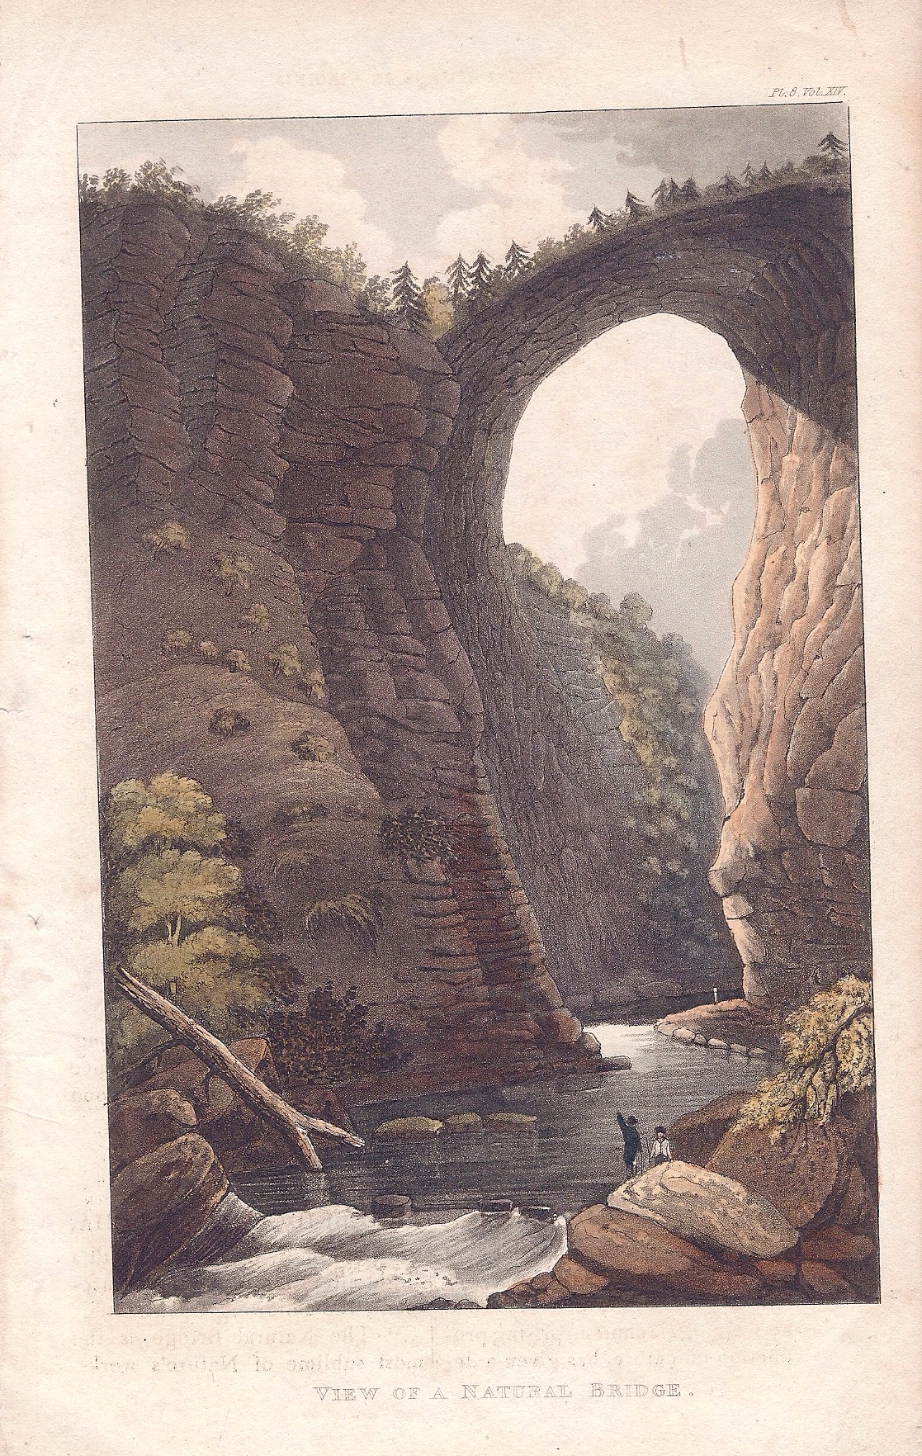 View of a Natural Bridge